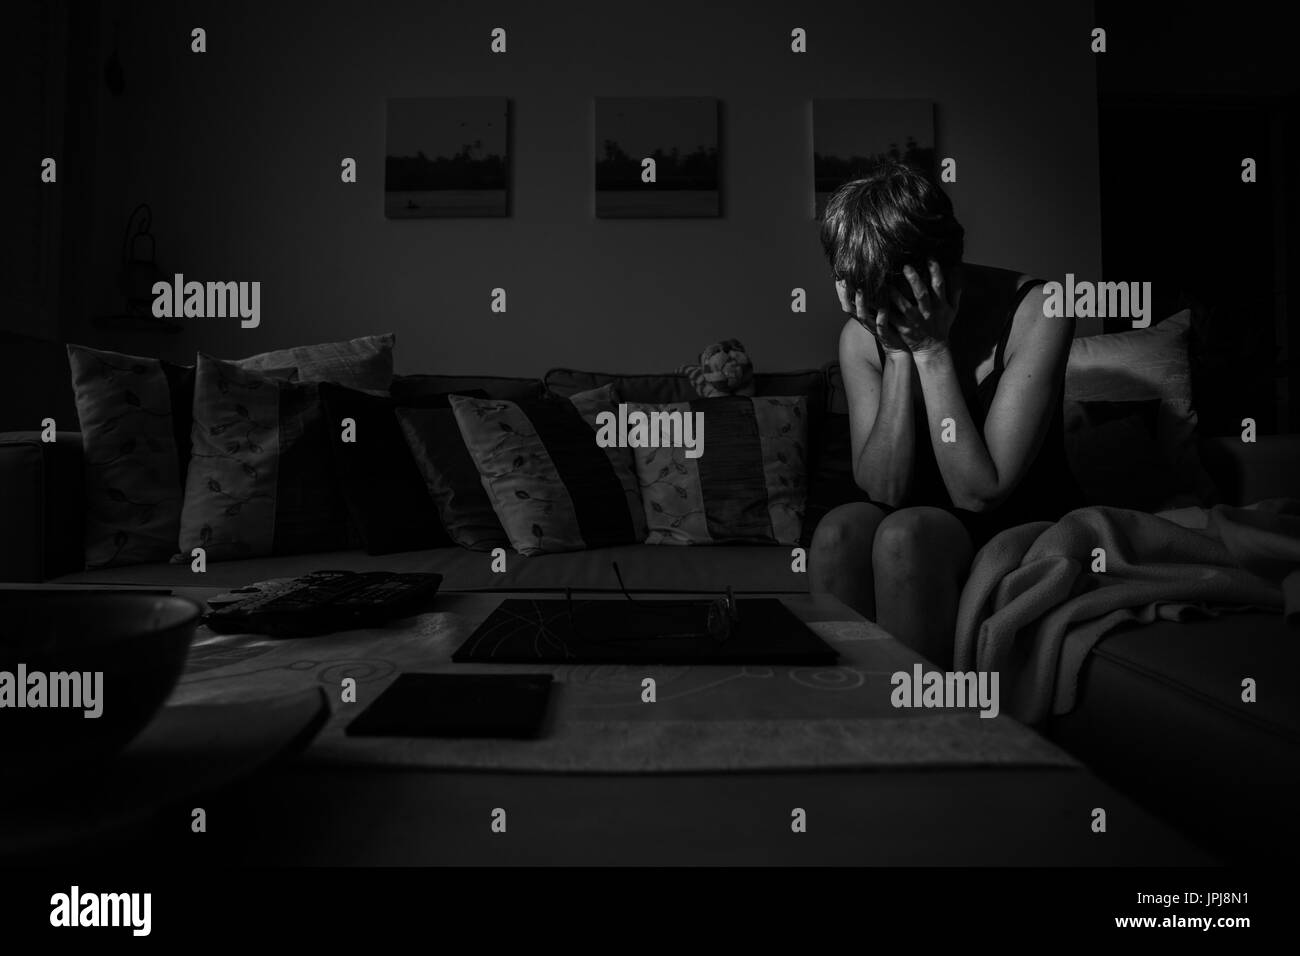 Depressed woman, head in hands, crying in despair, showing what it feels like living with Depression and Anxiety. Stock Photo